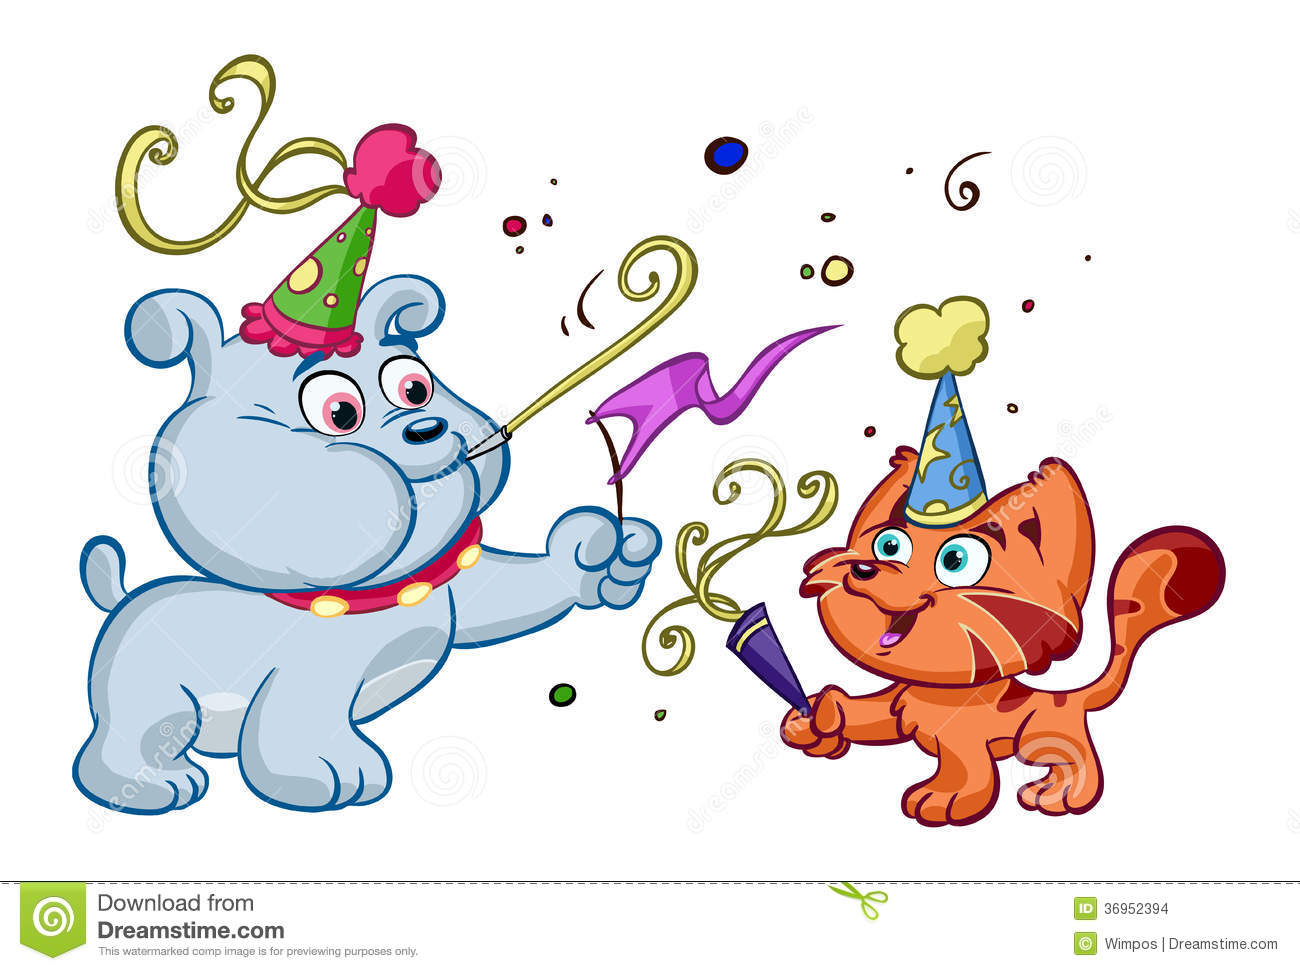 Dog and cat enjoying party stock vector. Illustration of graphical - 36952394